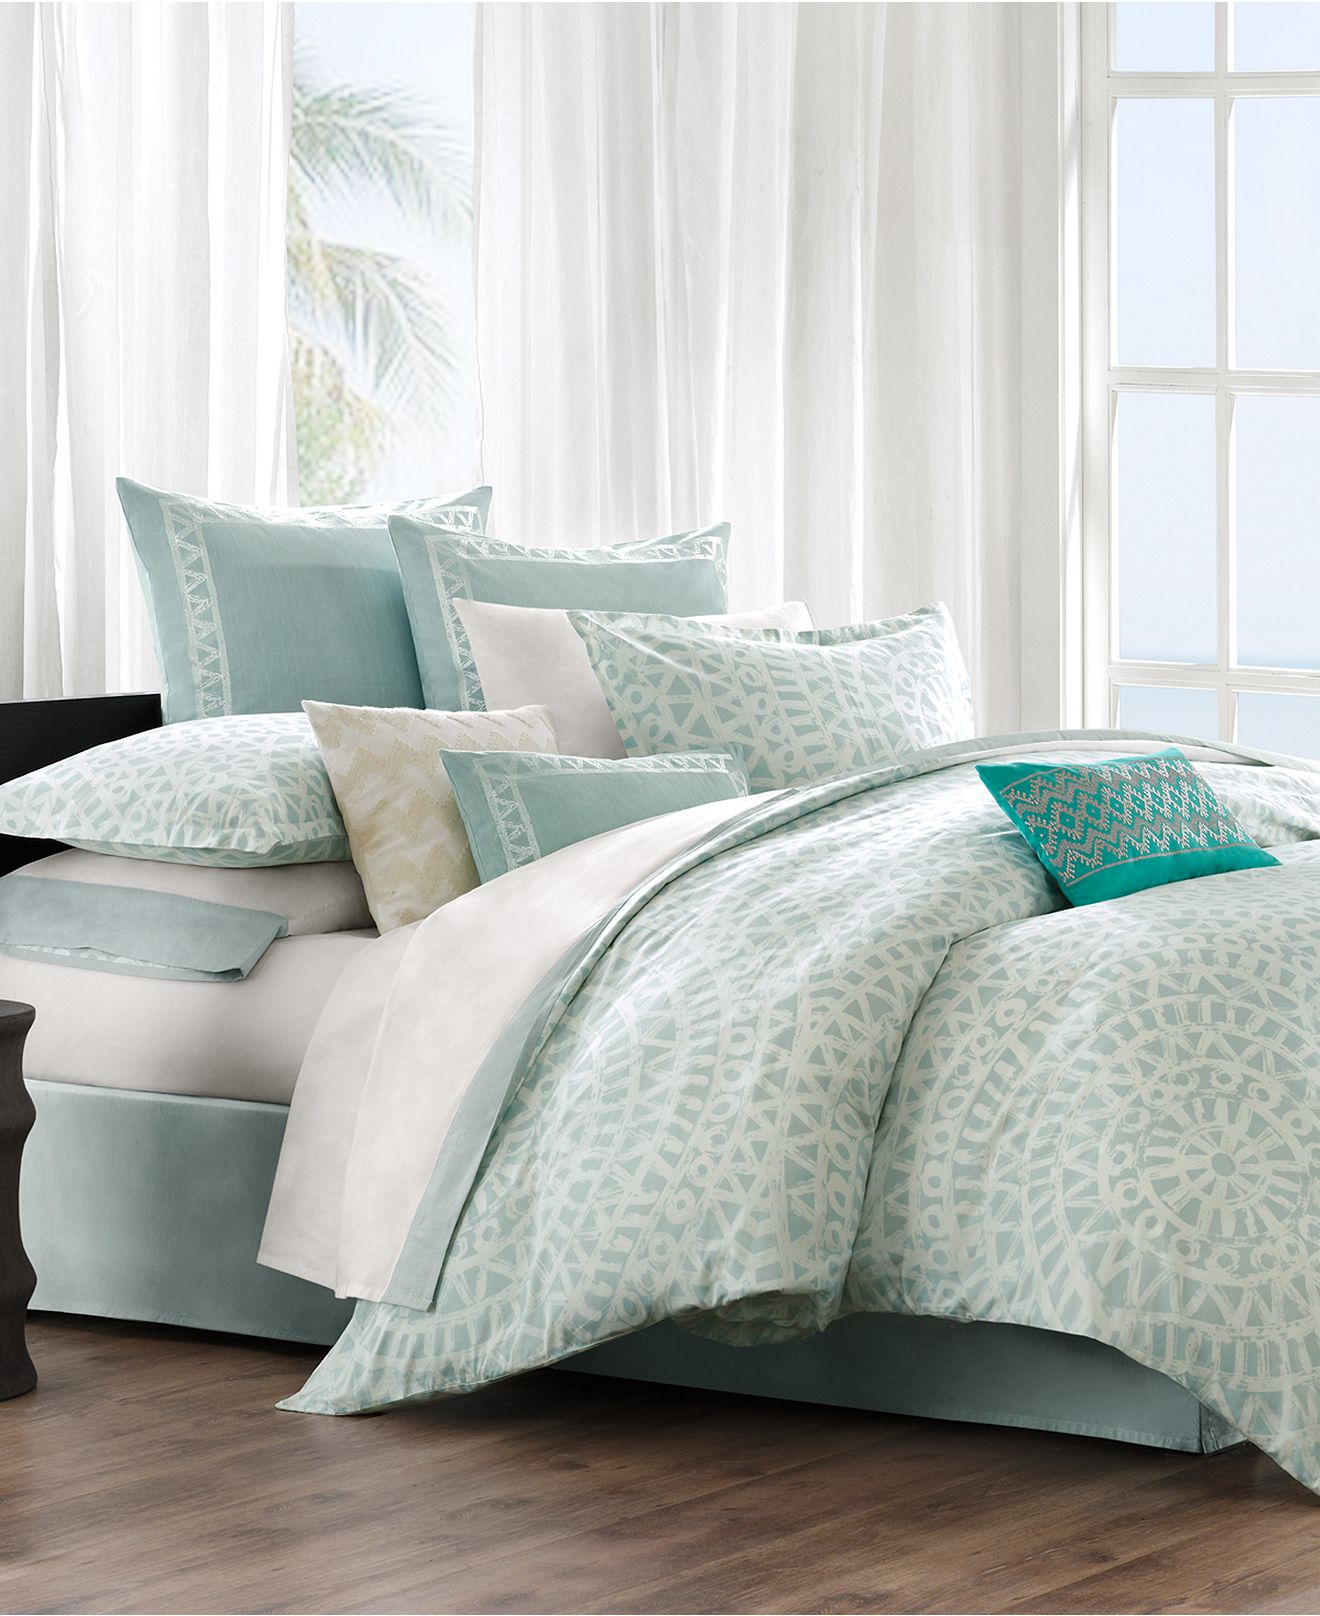 Echo Bedding Mykonos Comforter And Duvet From Macys